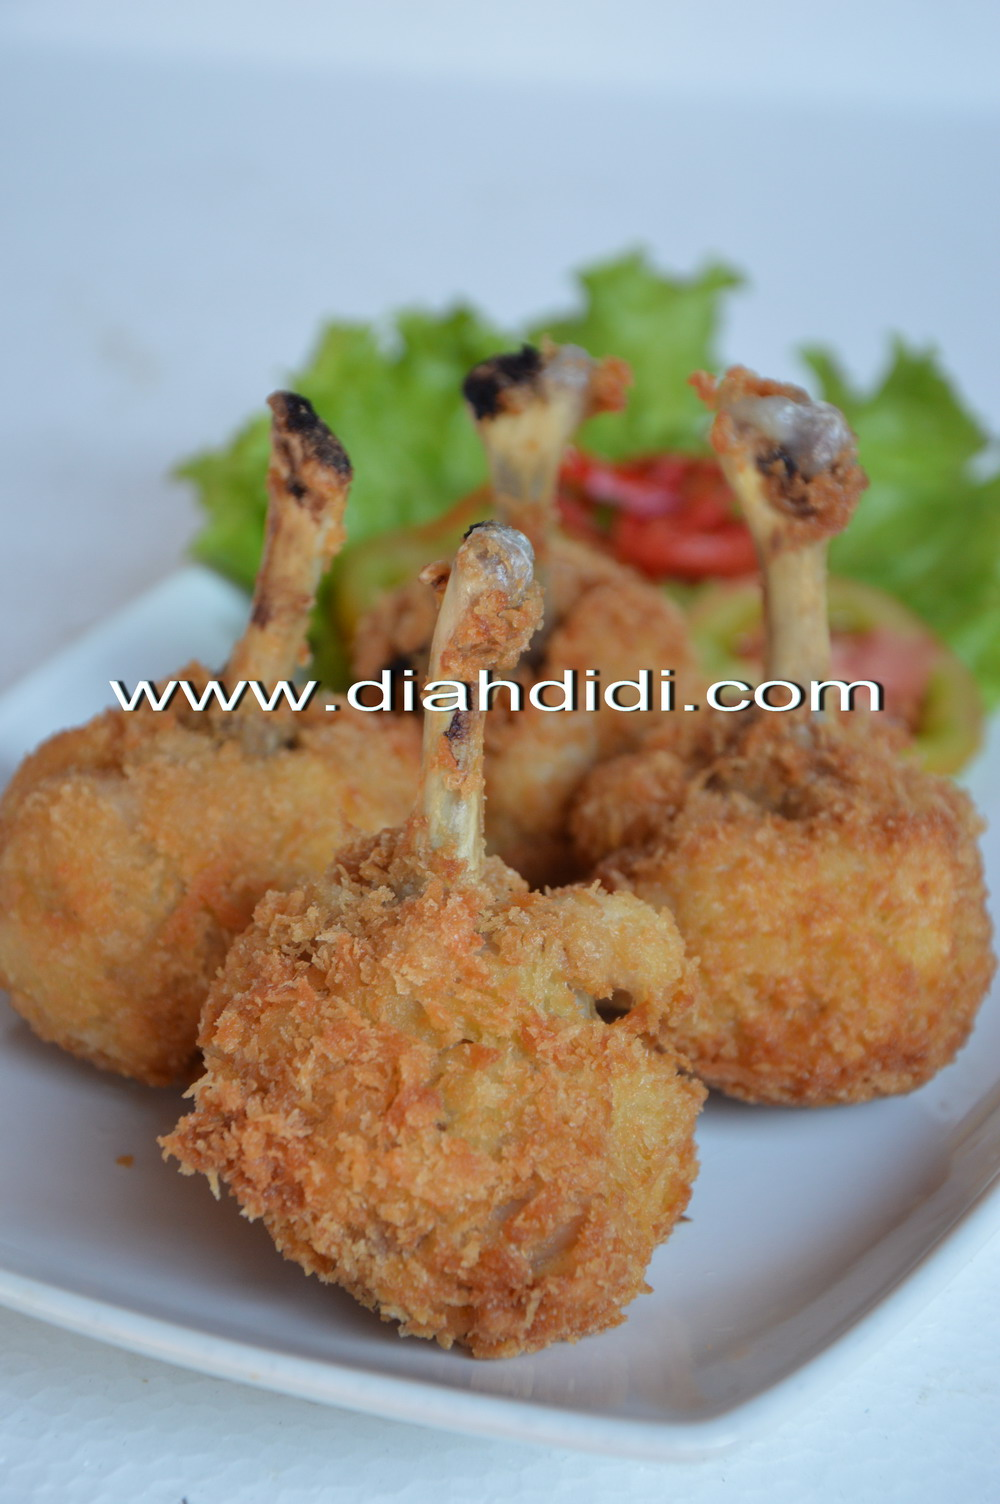 Diah Didis Kitchen Chicken Drum Stick